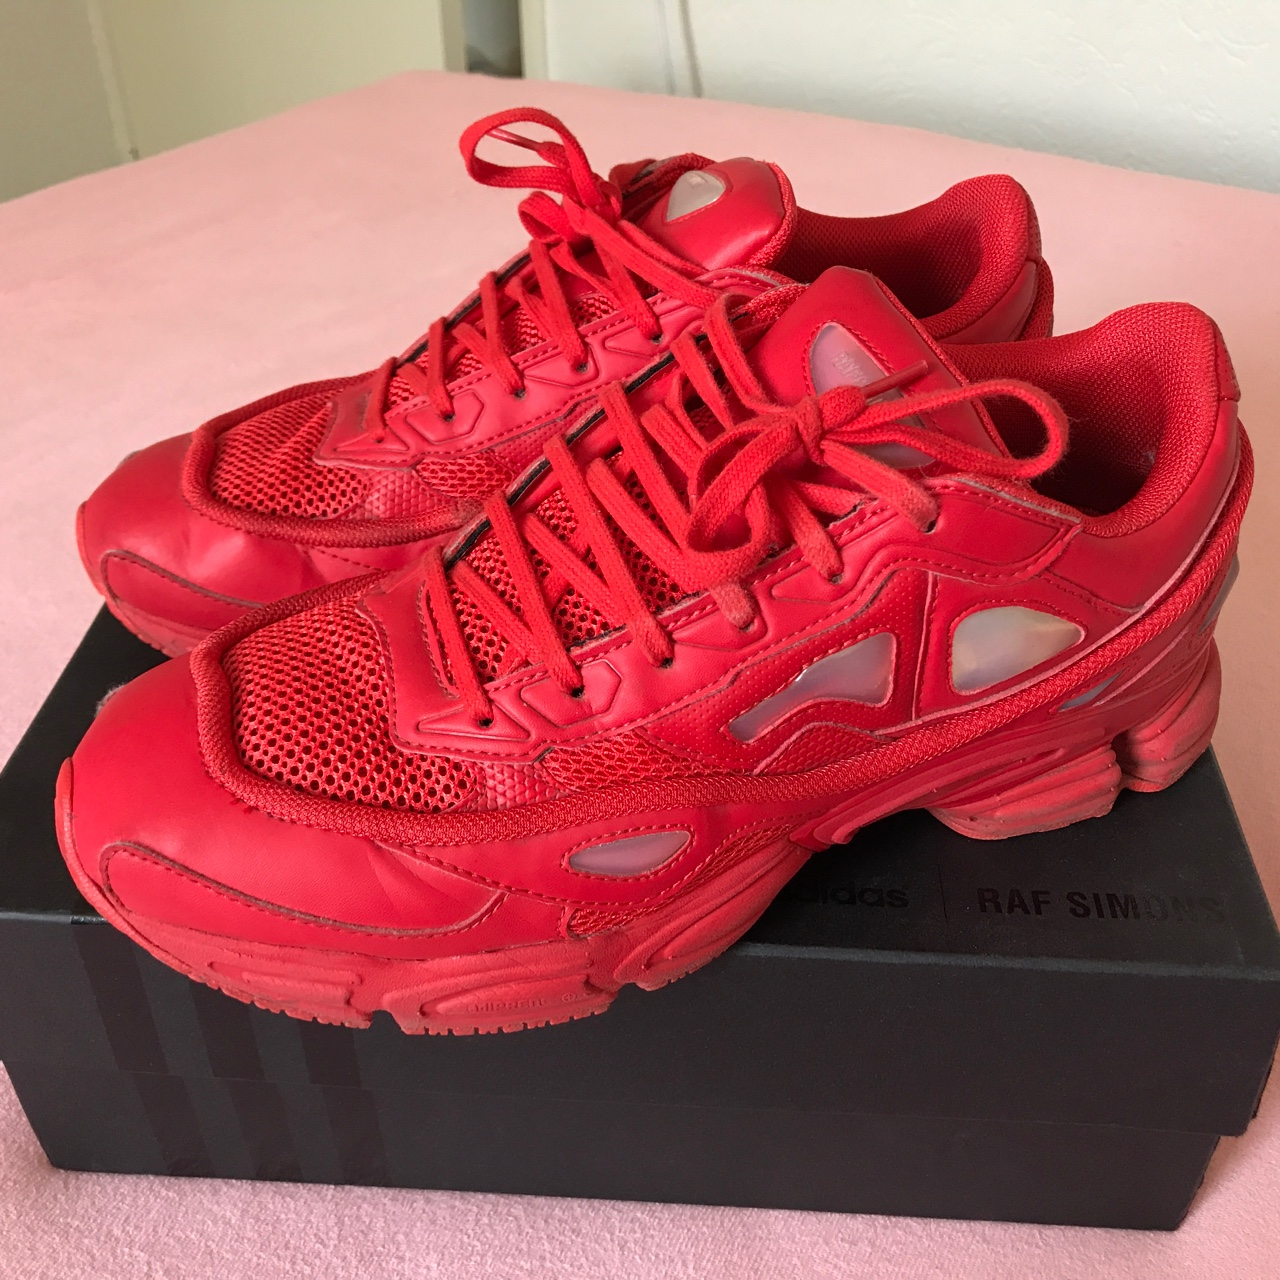 Raf Simons Ozweego 2 RED. NOT trying to